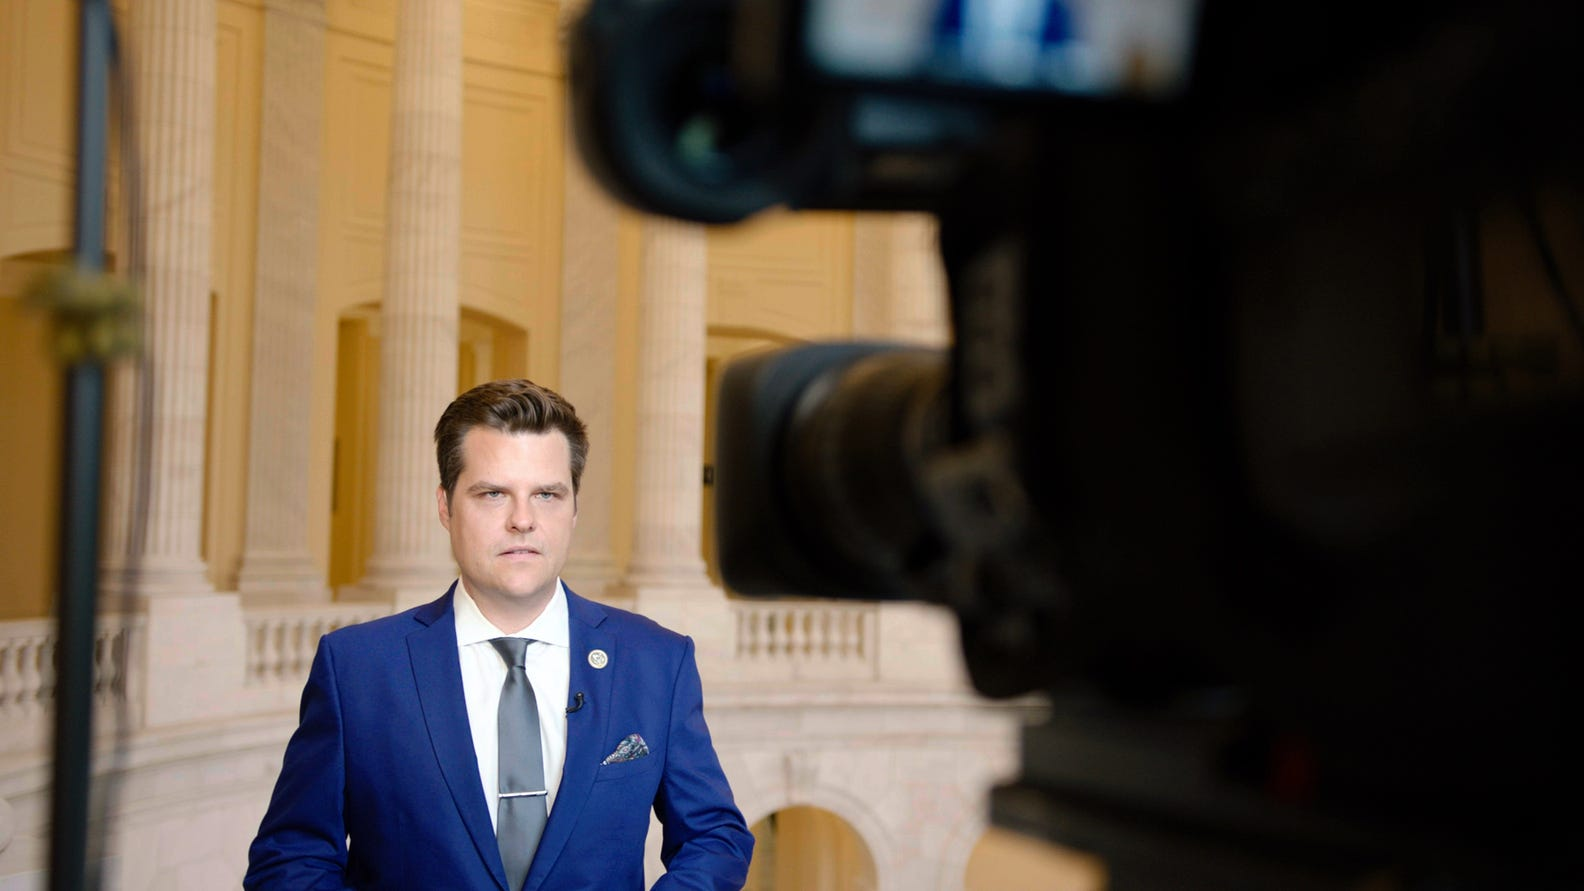 Rep. Matt Gaetz says he is  absolutely not resigning  in op-ed amid reports of sex crime investigation